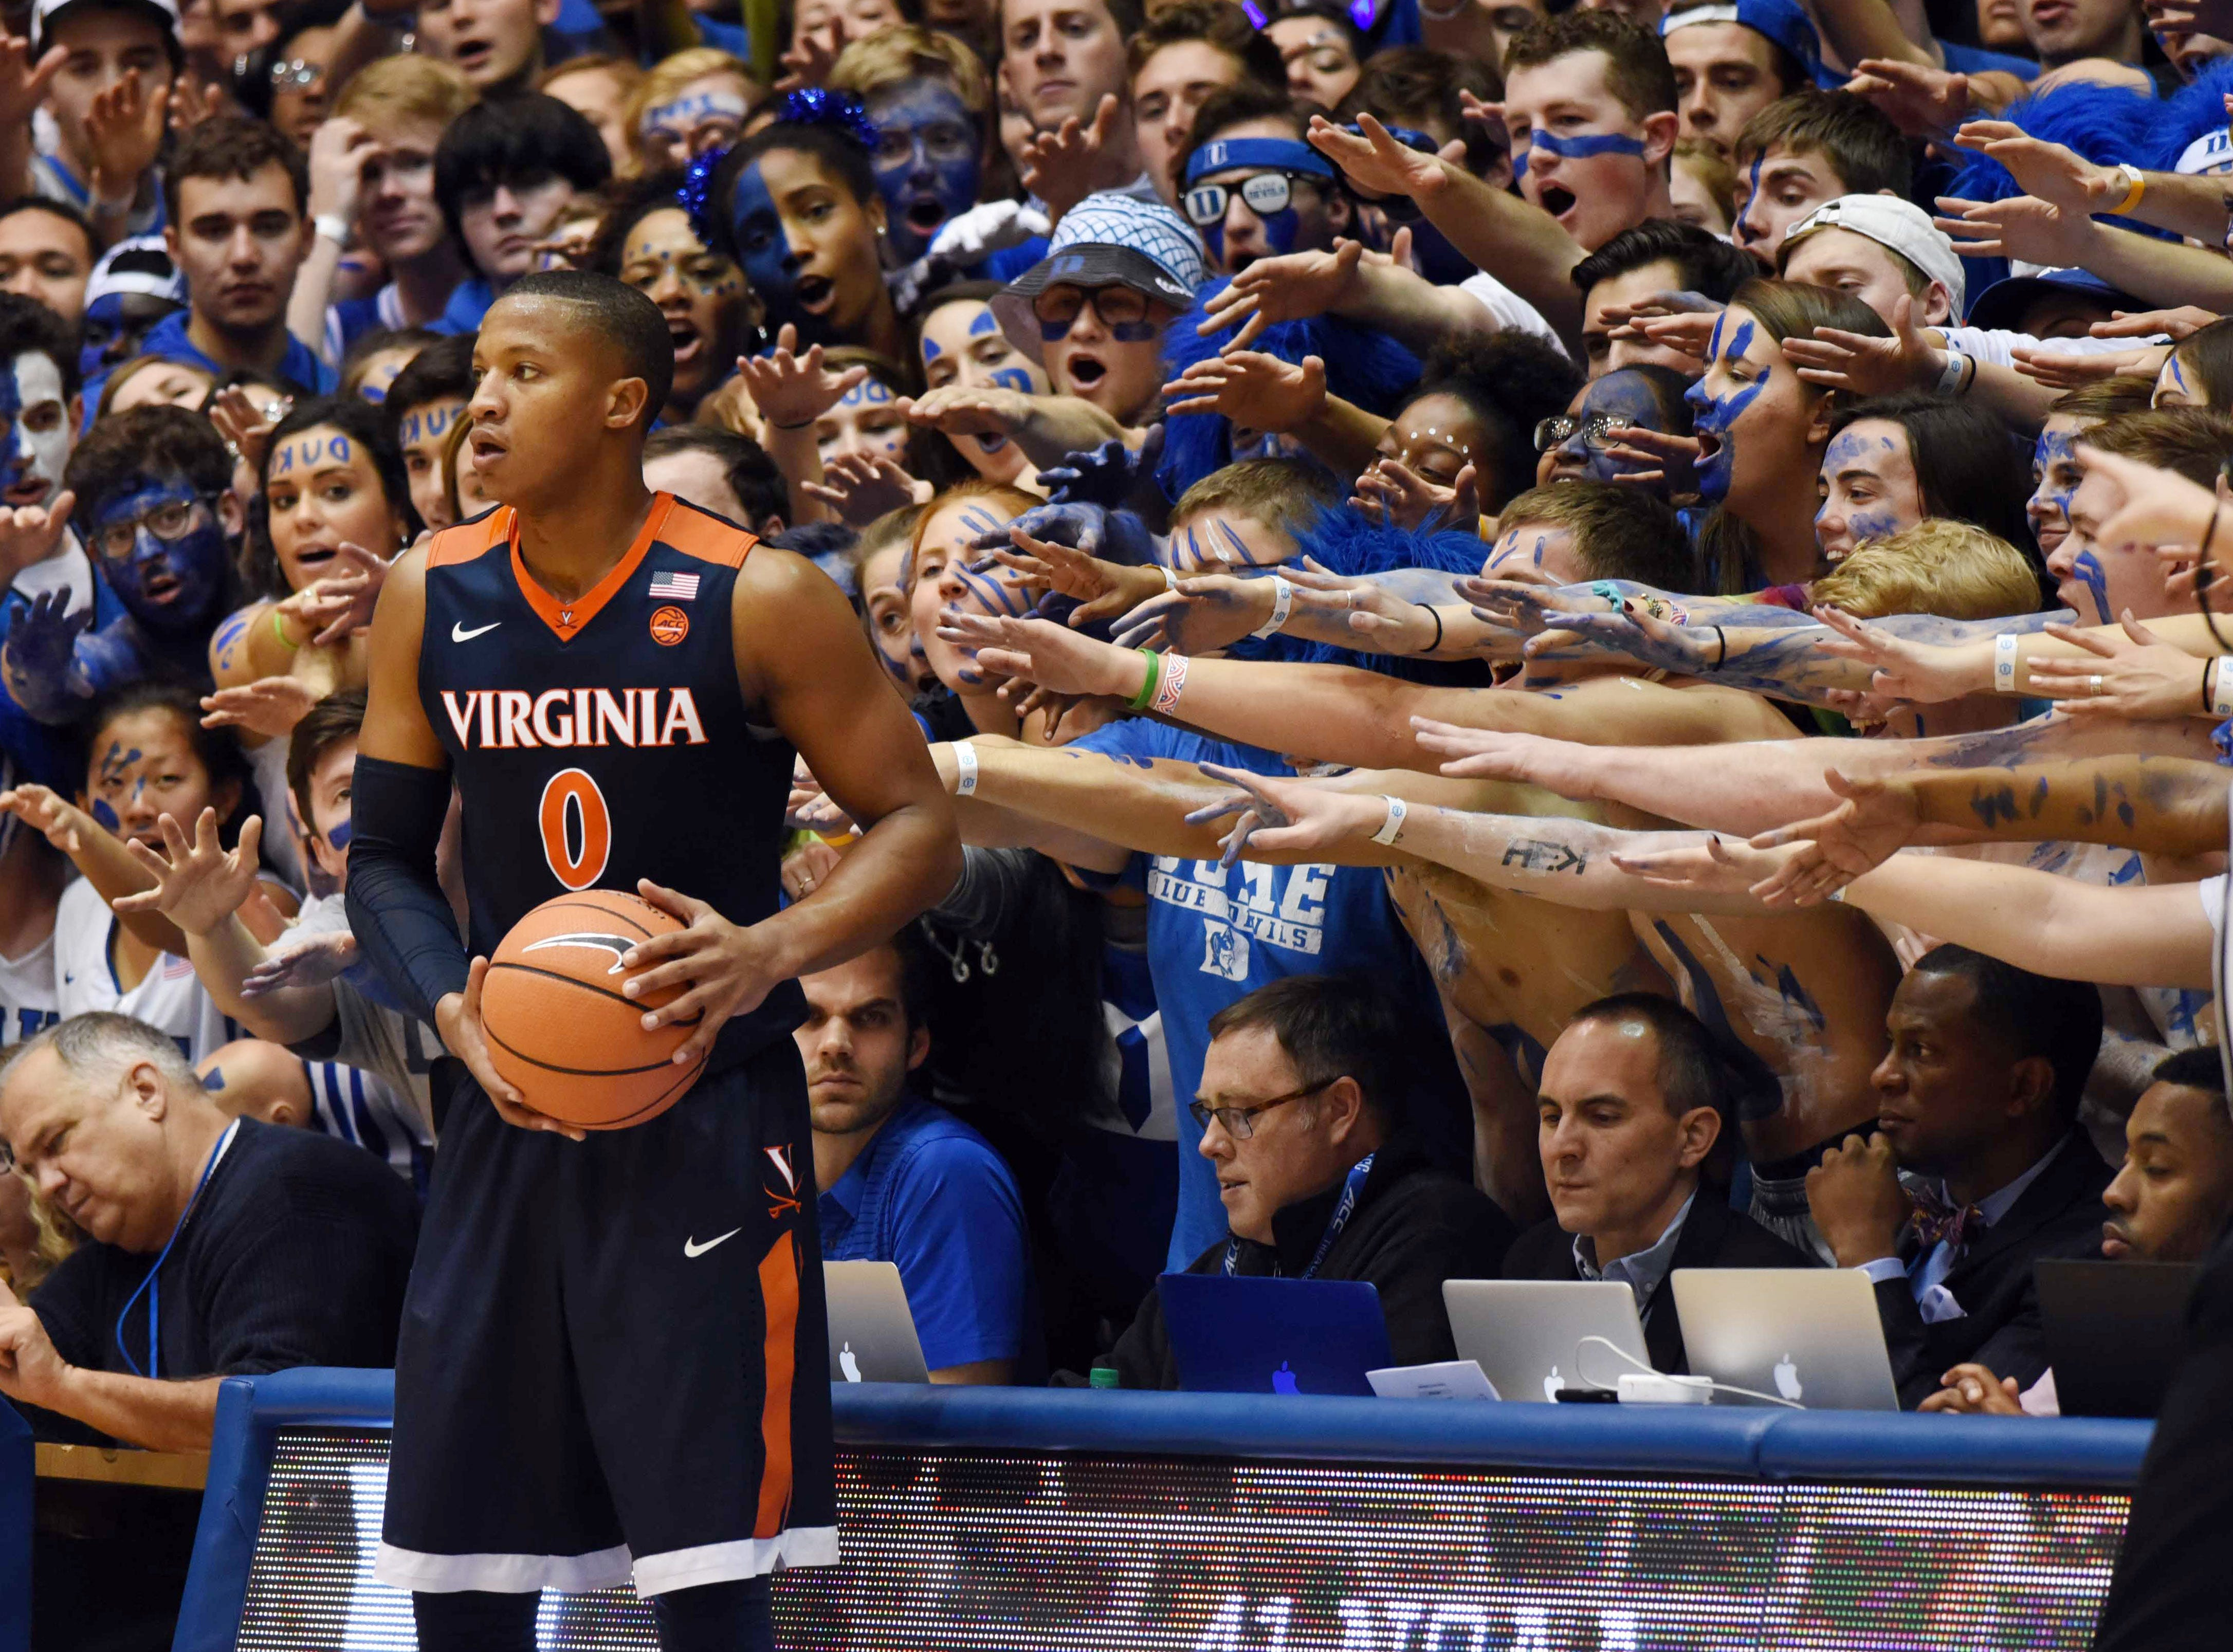 As basketball cranks up, indoor games seem like 'wrong choice to be making' for fans